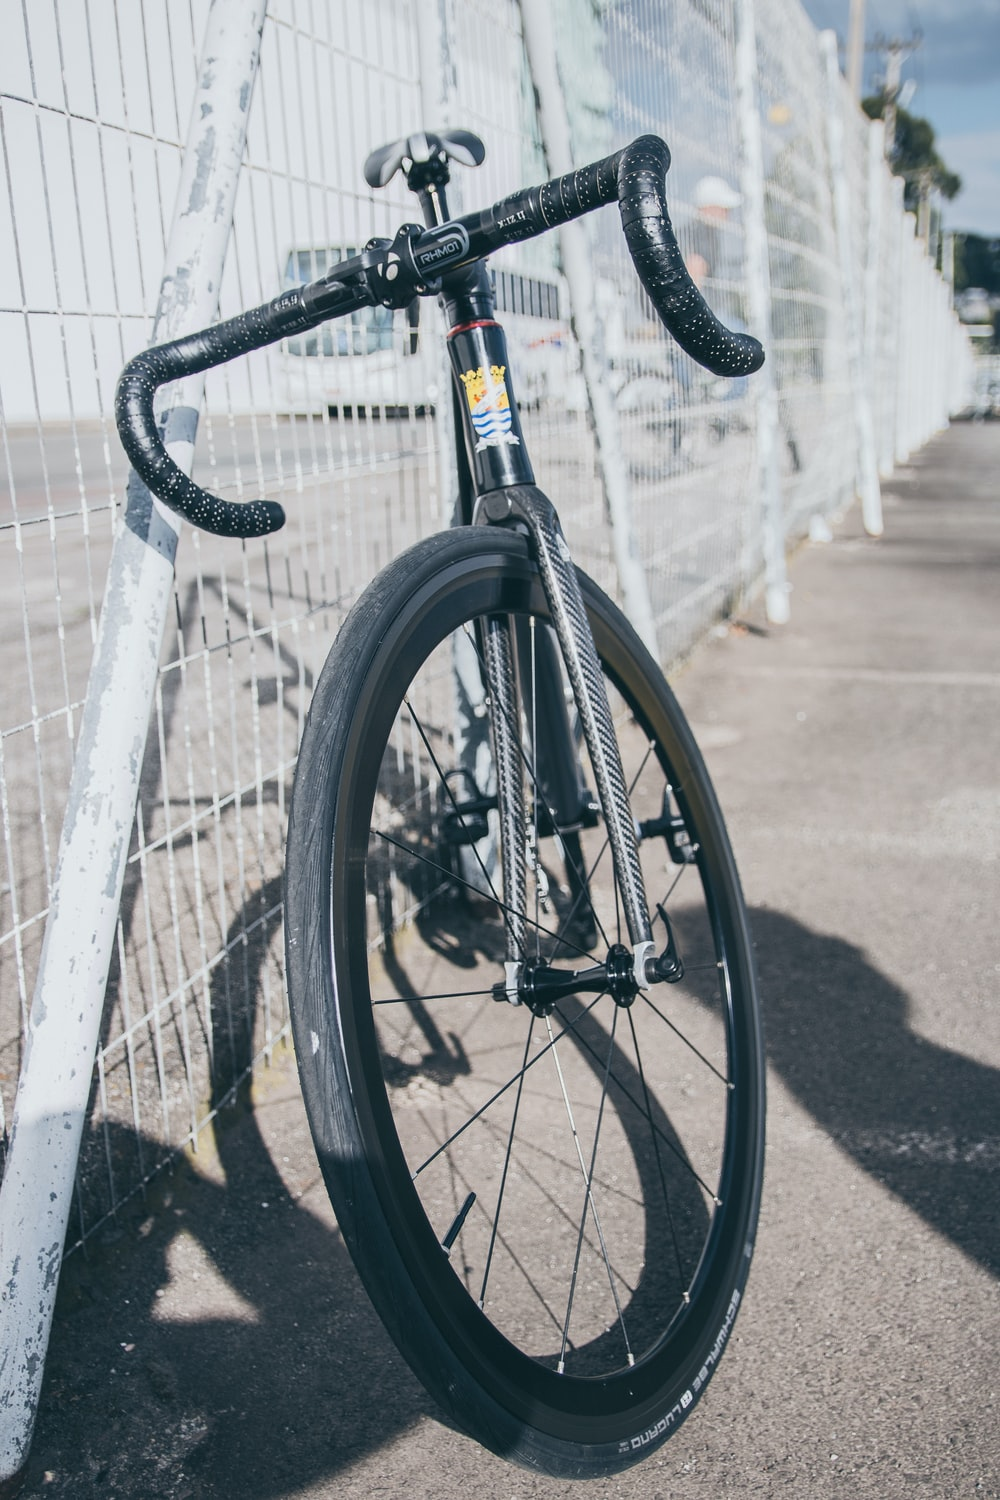 black and white road bike parked beside metal fence